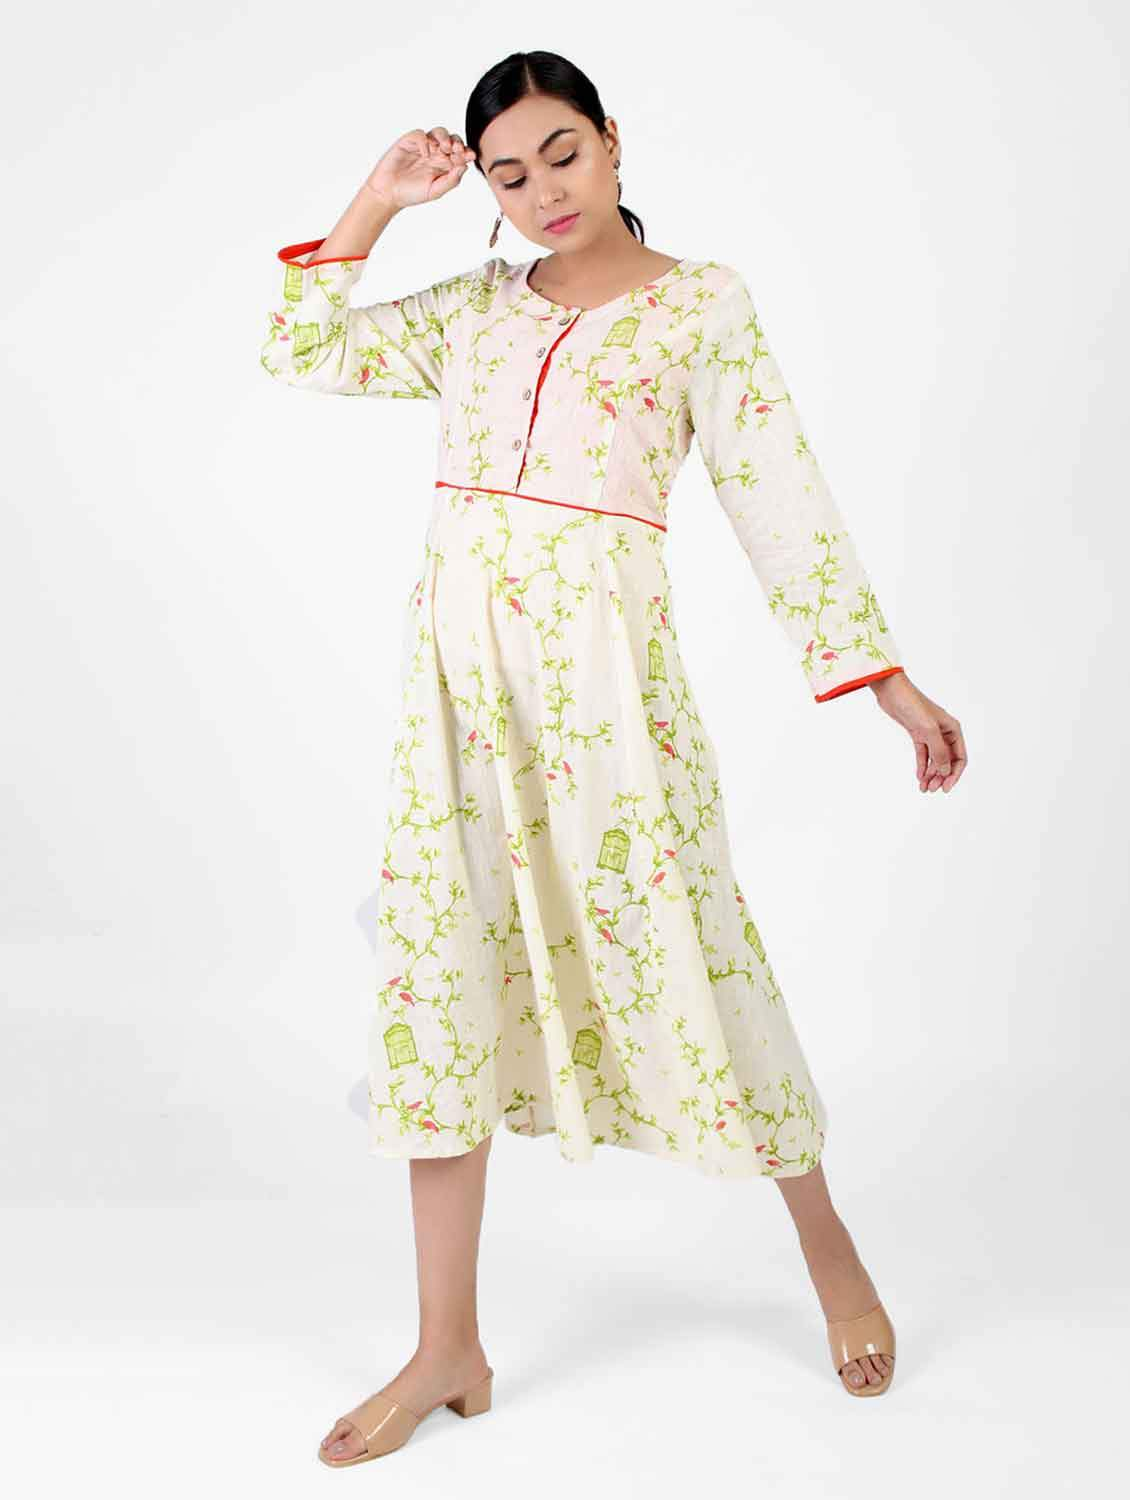 DANCING ADILA CUTIE DRESS